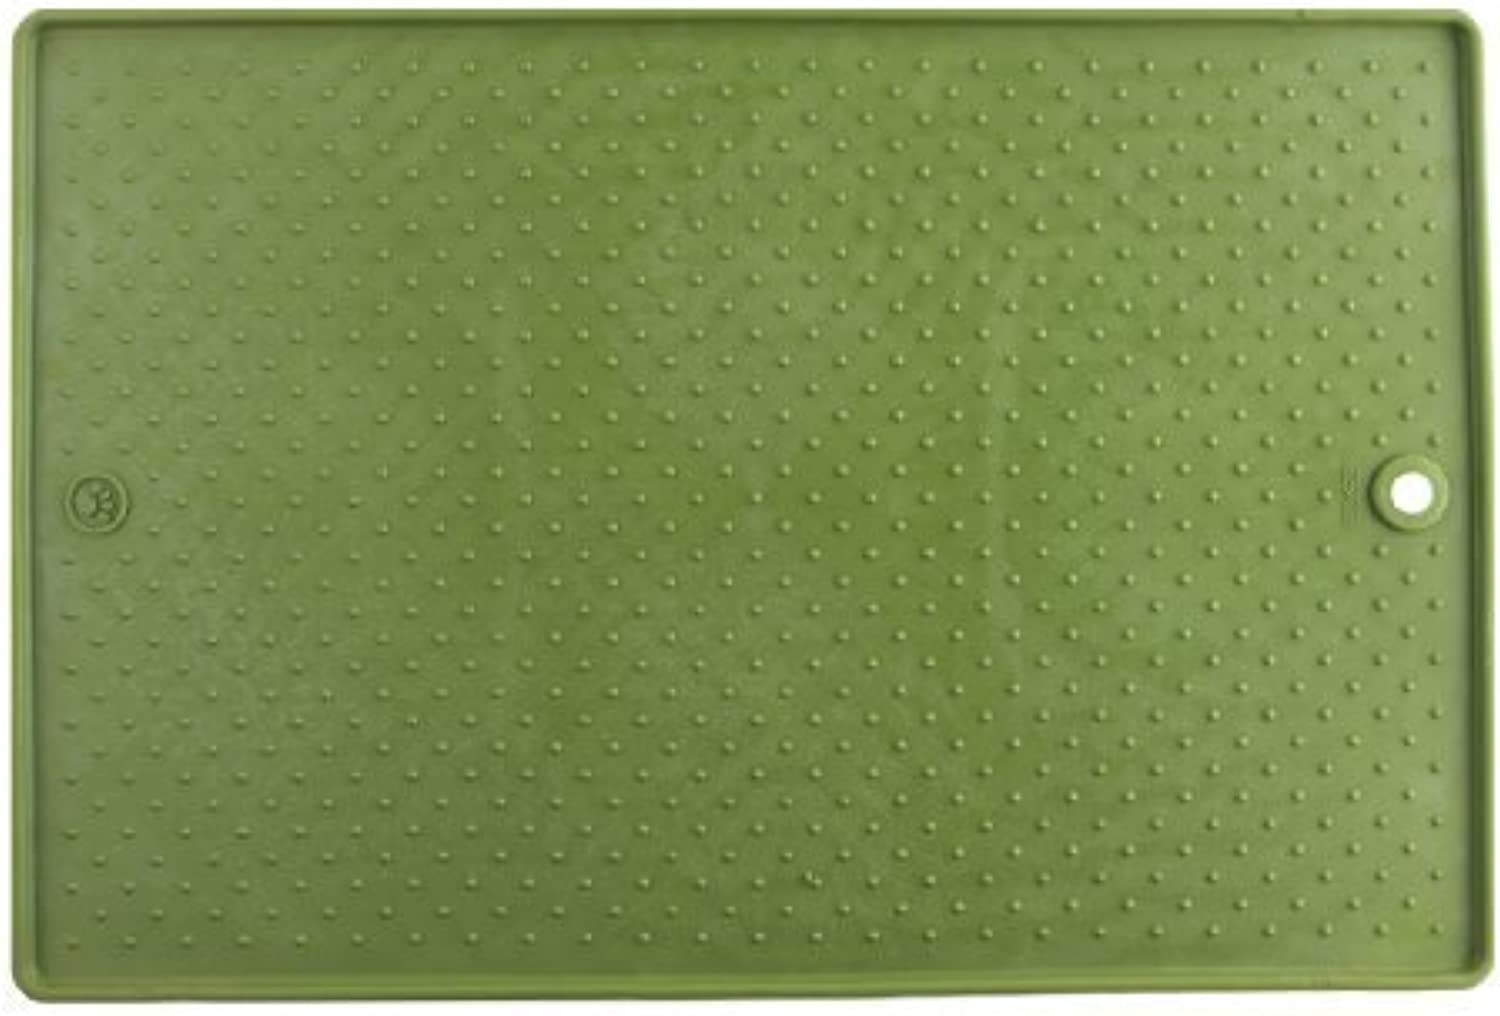 Dexas Grippmat for Pets, Green by Coast2Coast Wholesale Pet Products